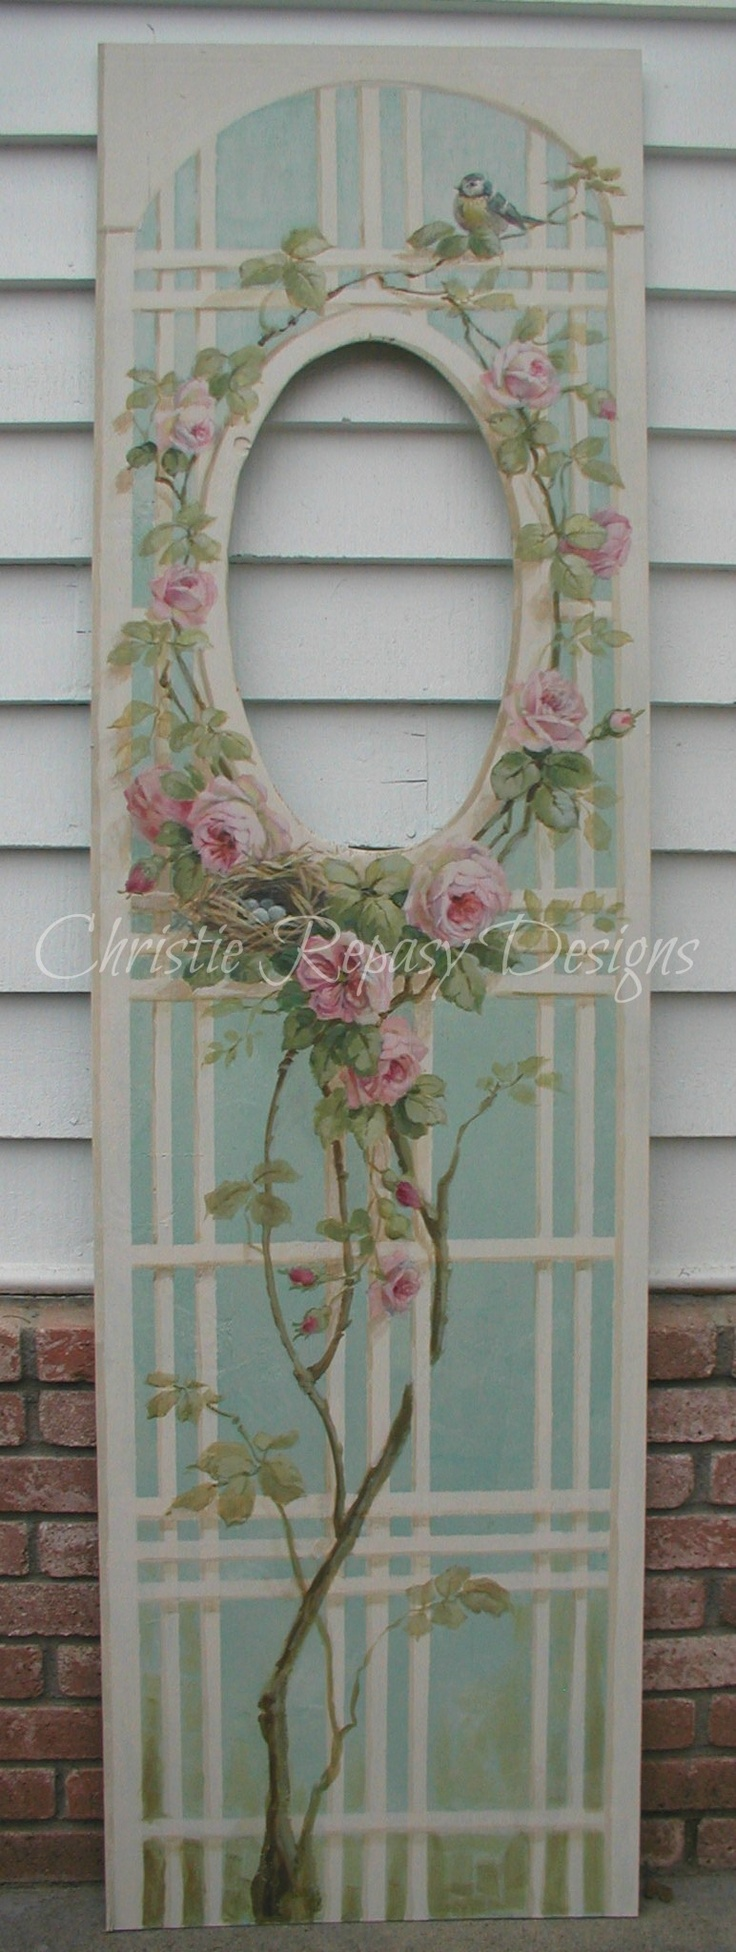 C.Repasy~ painted rose lattice for my booth at The Vintage Marketplace show March 1st,2nd3rd 2023